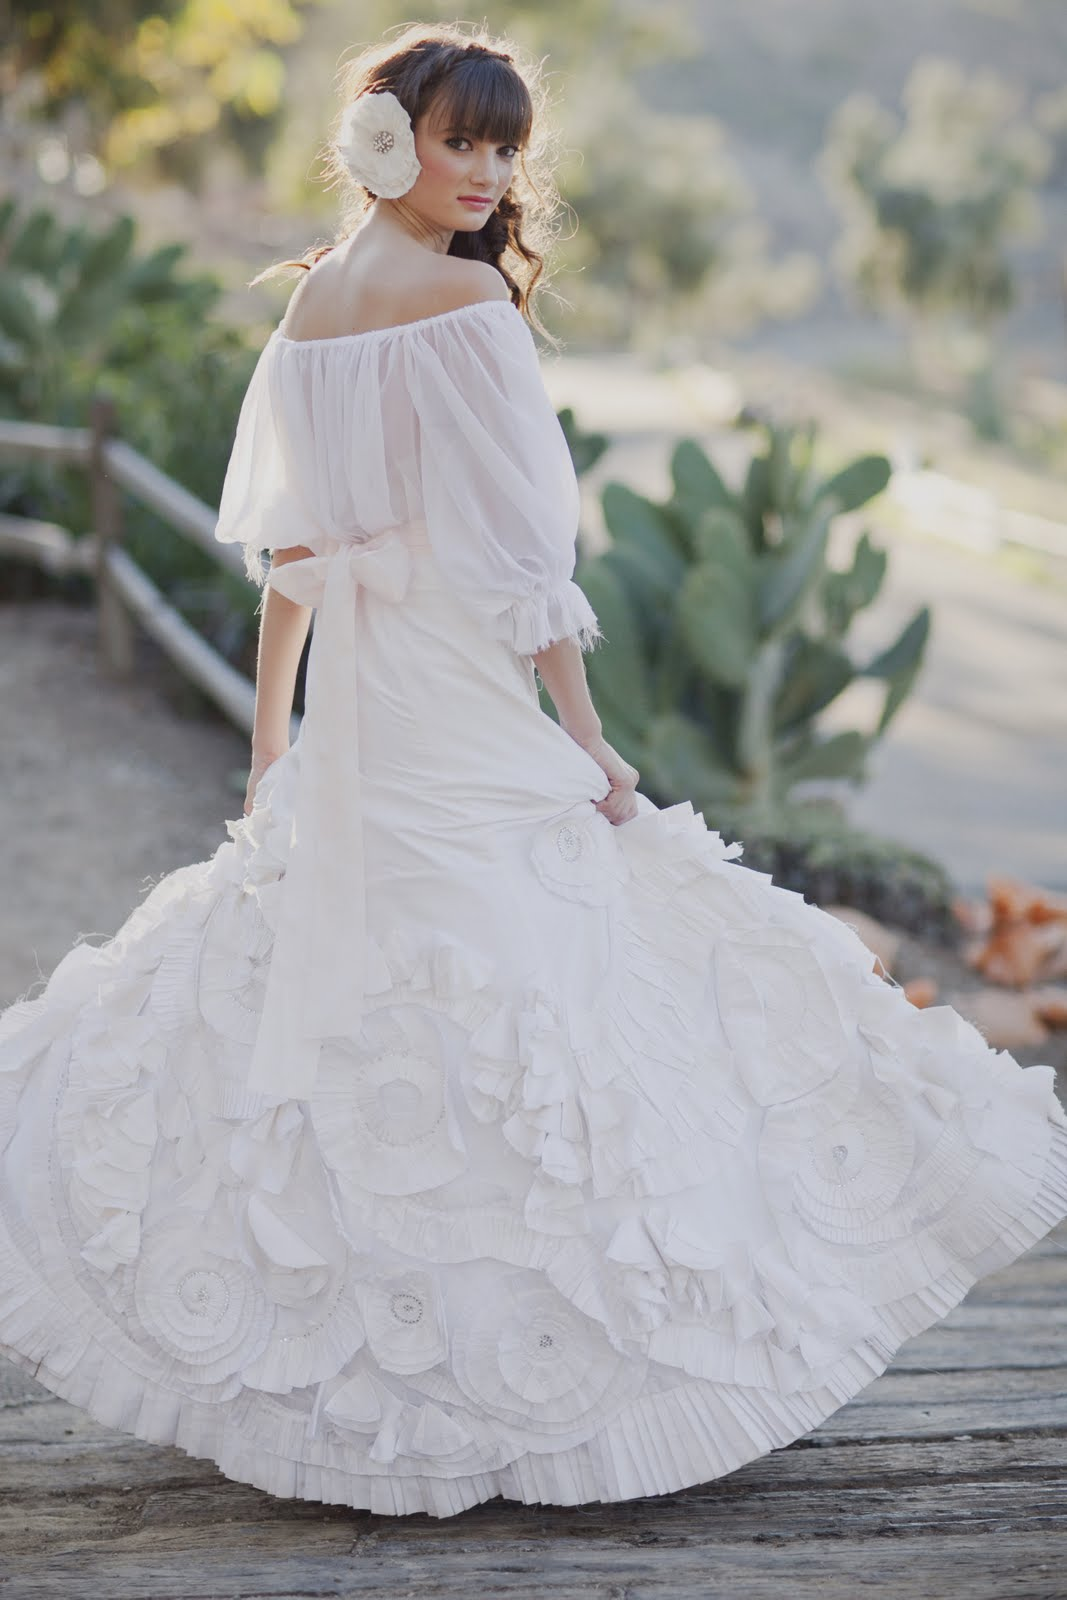 Spanish Bridal Fashion with